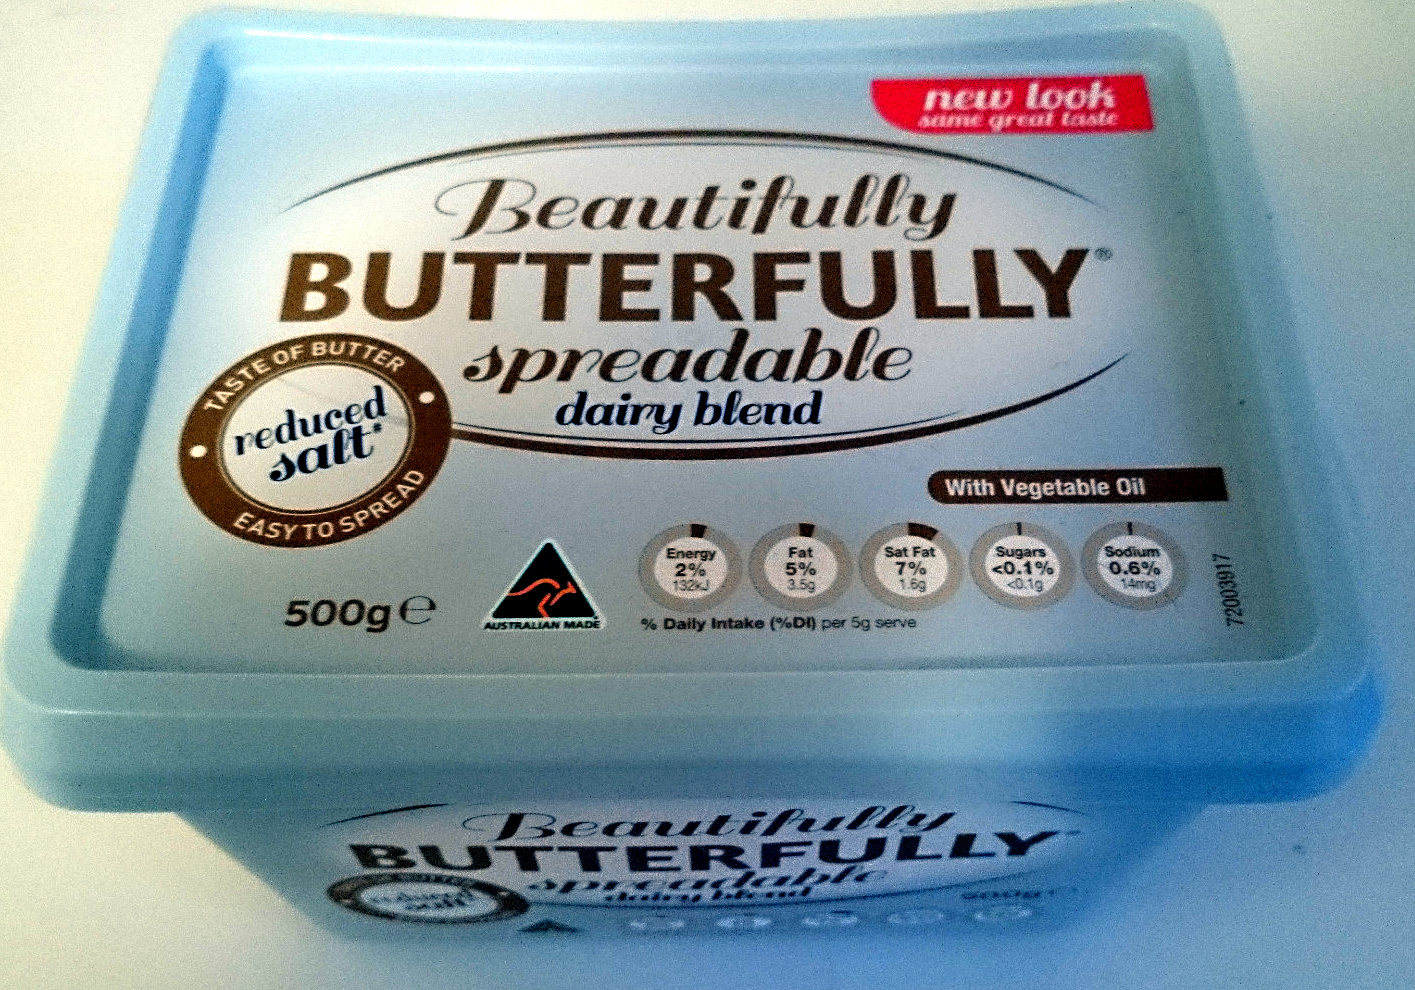 Beautifully Butterfully Salt Reduced - Product